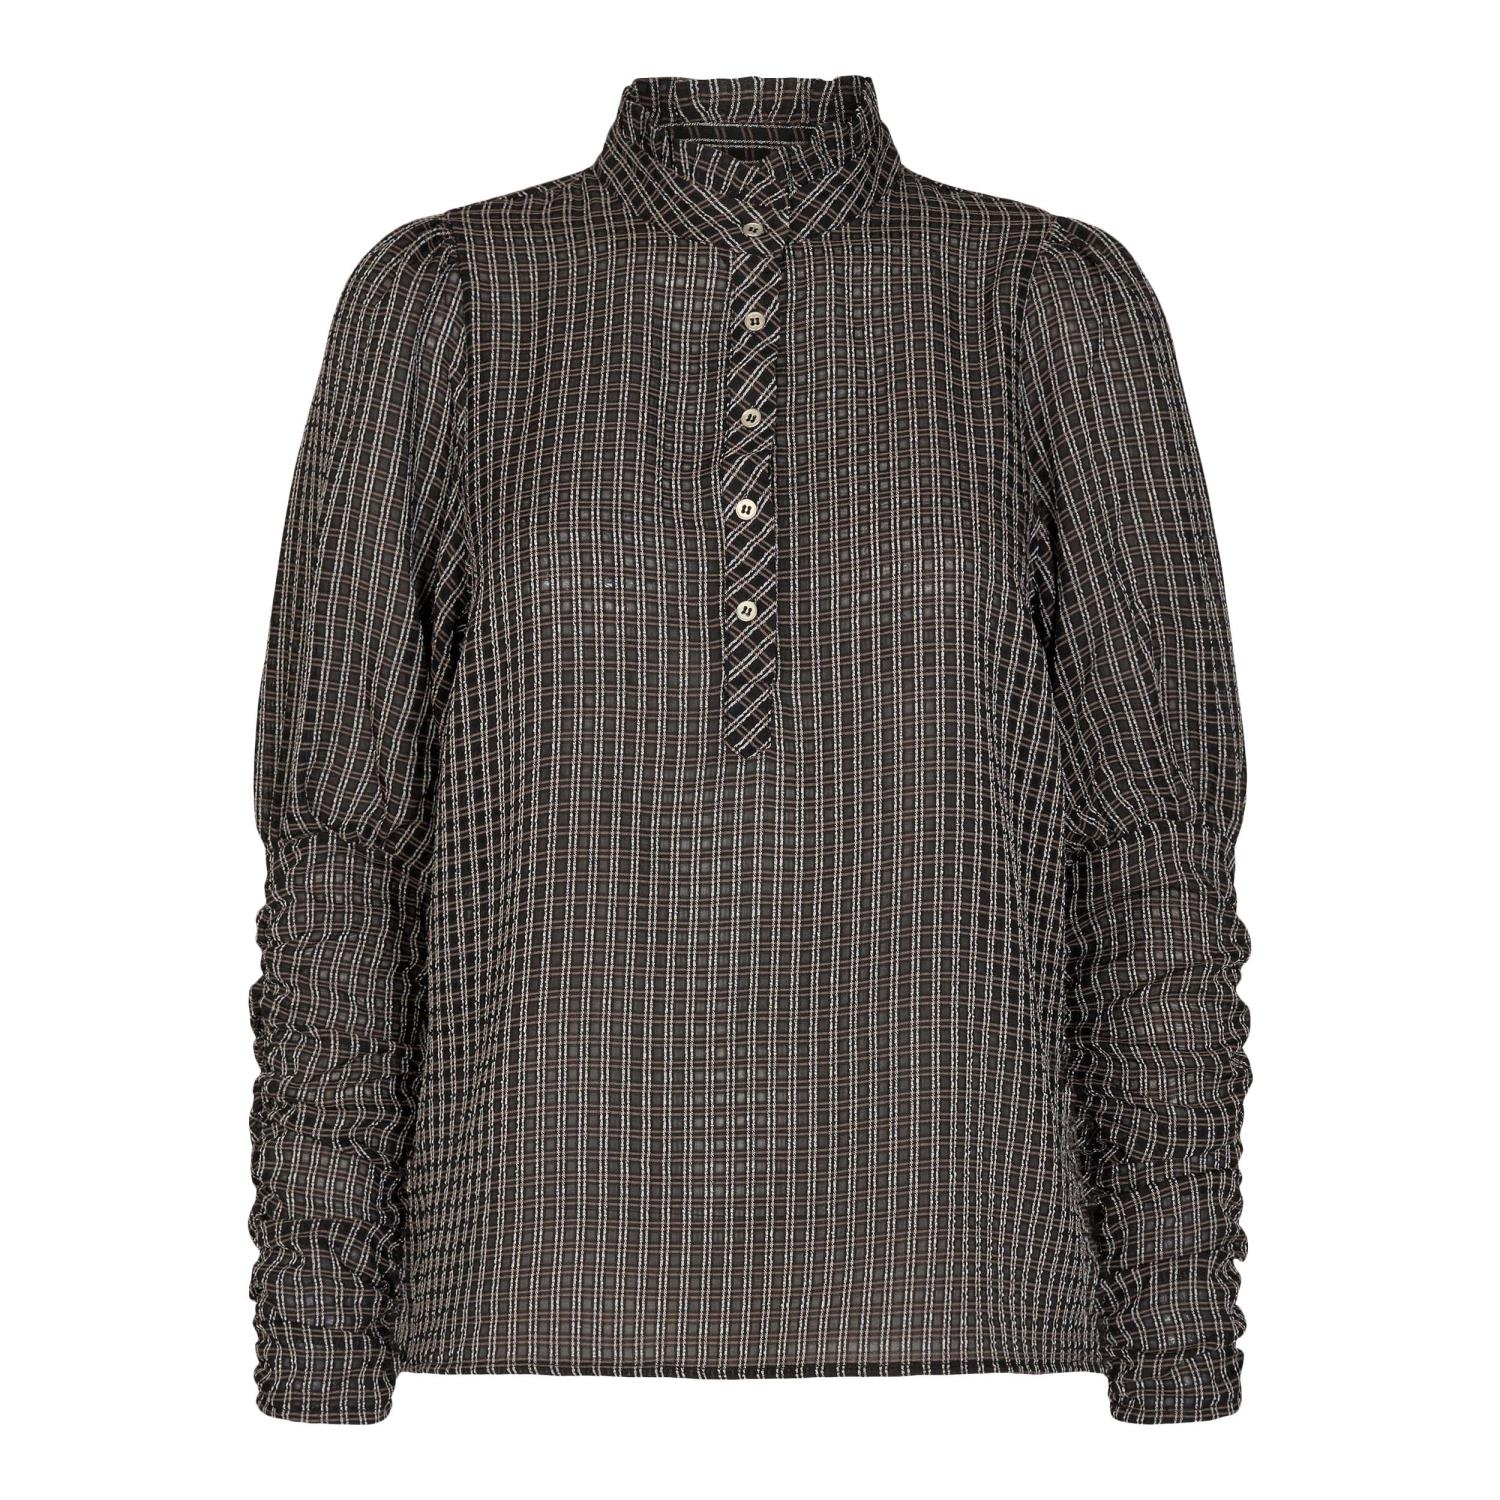 CLEAR CHECK SHIRT - COCOUTURE